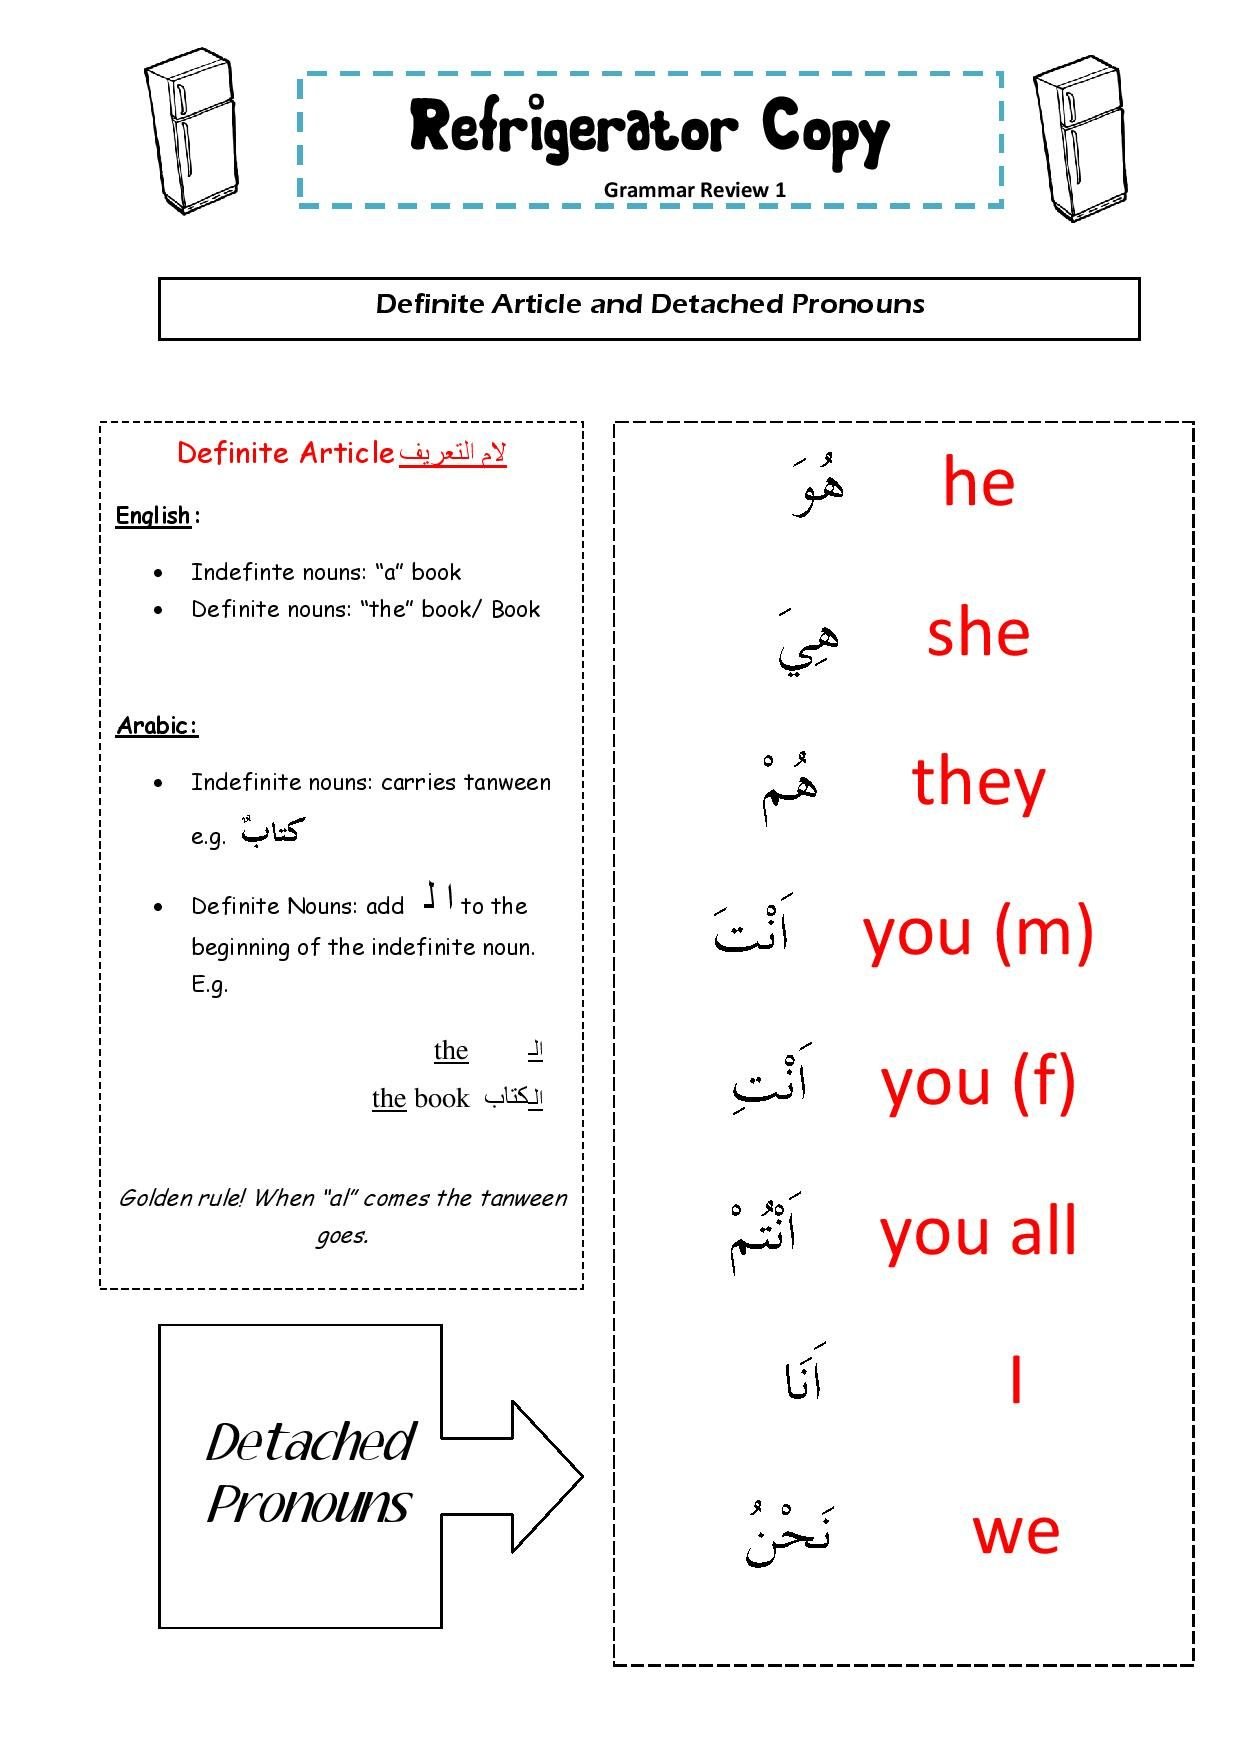 Fridge Copy Handy Revision Sheet On Detached Pronouns And